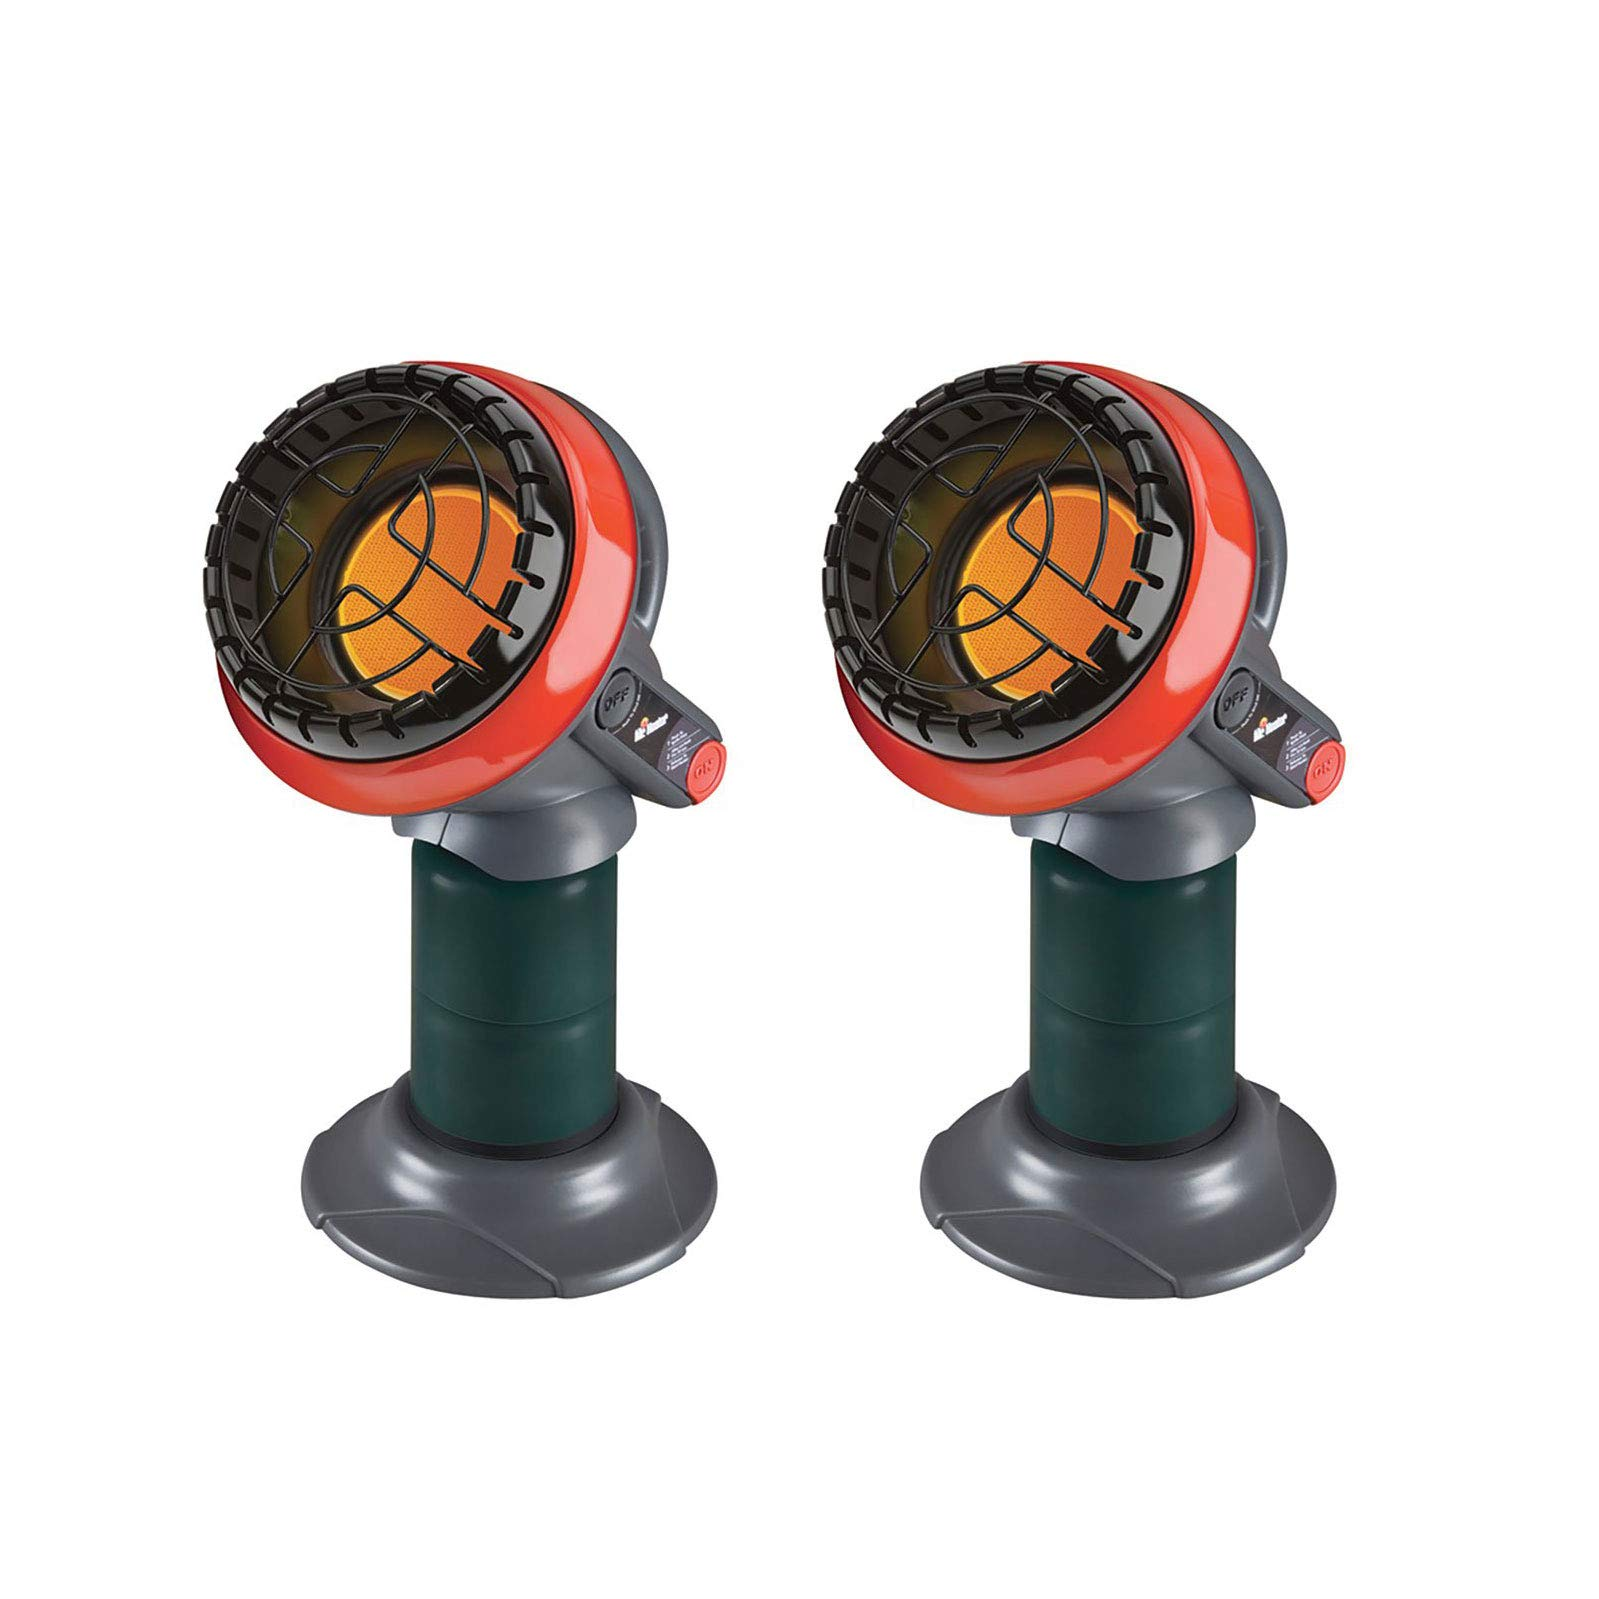 Mr. Heater 3800 BTU Indoor Outdoor Portable Little Buddy Propane Heater (2 Pack) by Mr. Heater